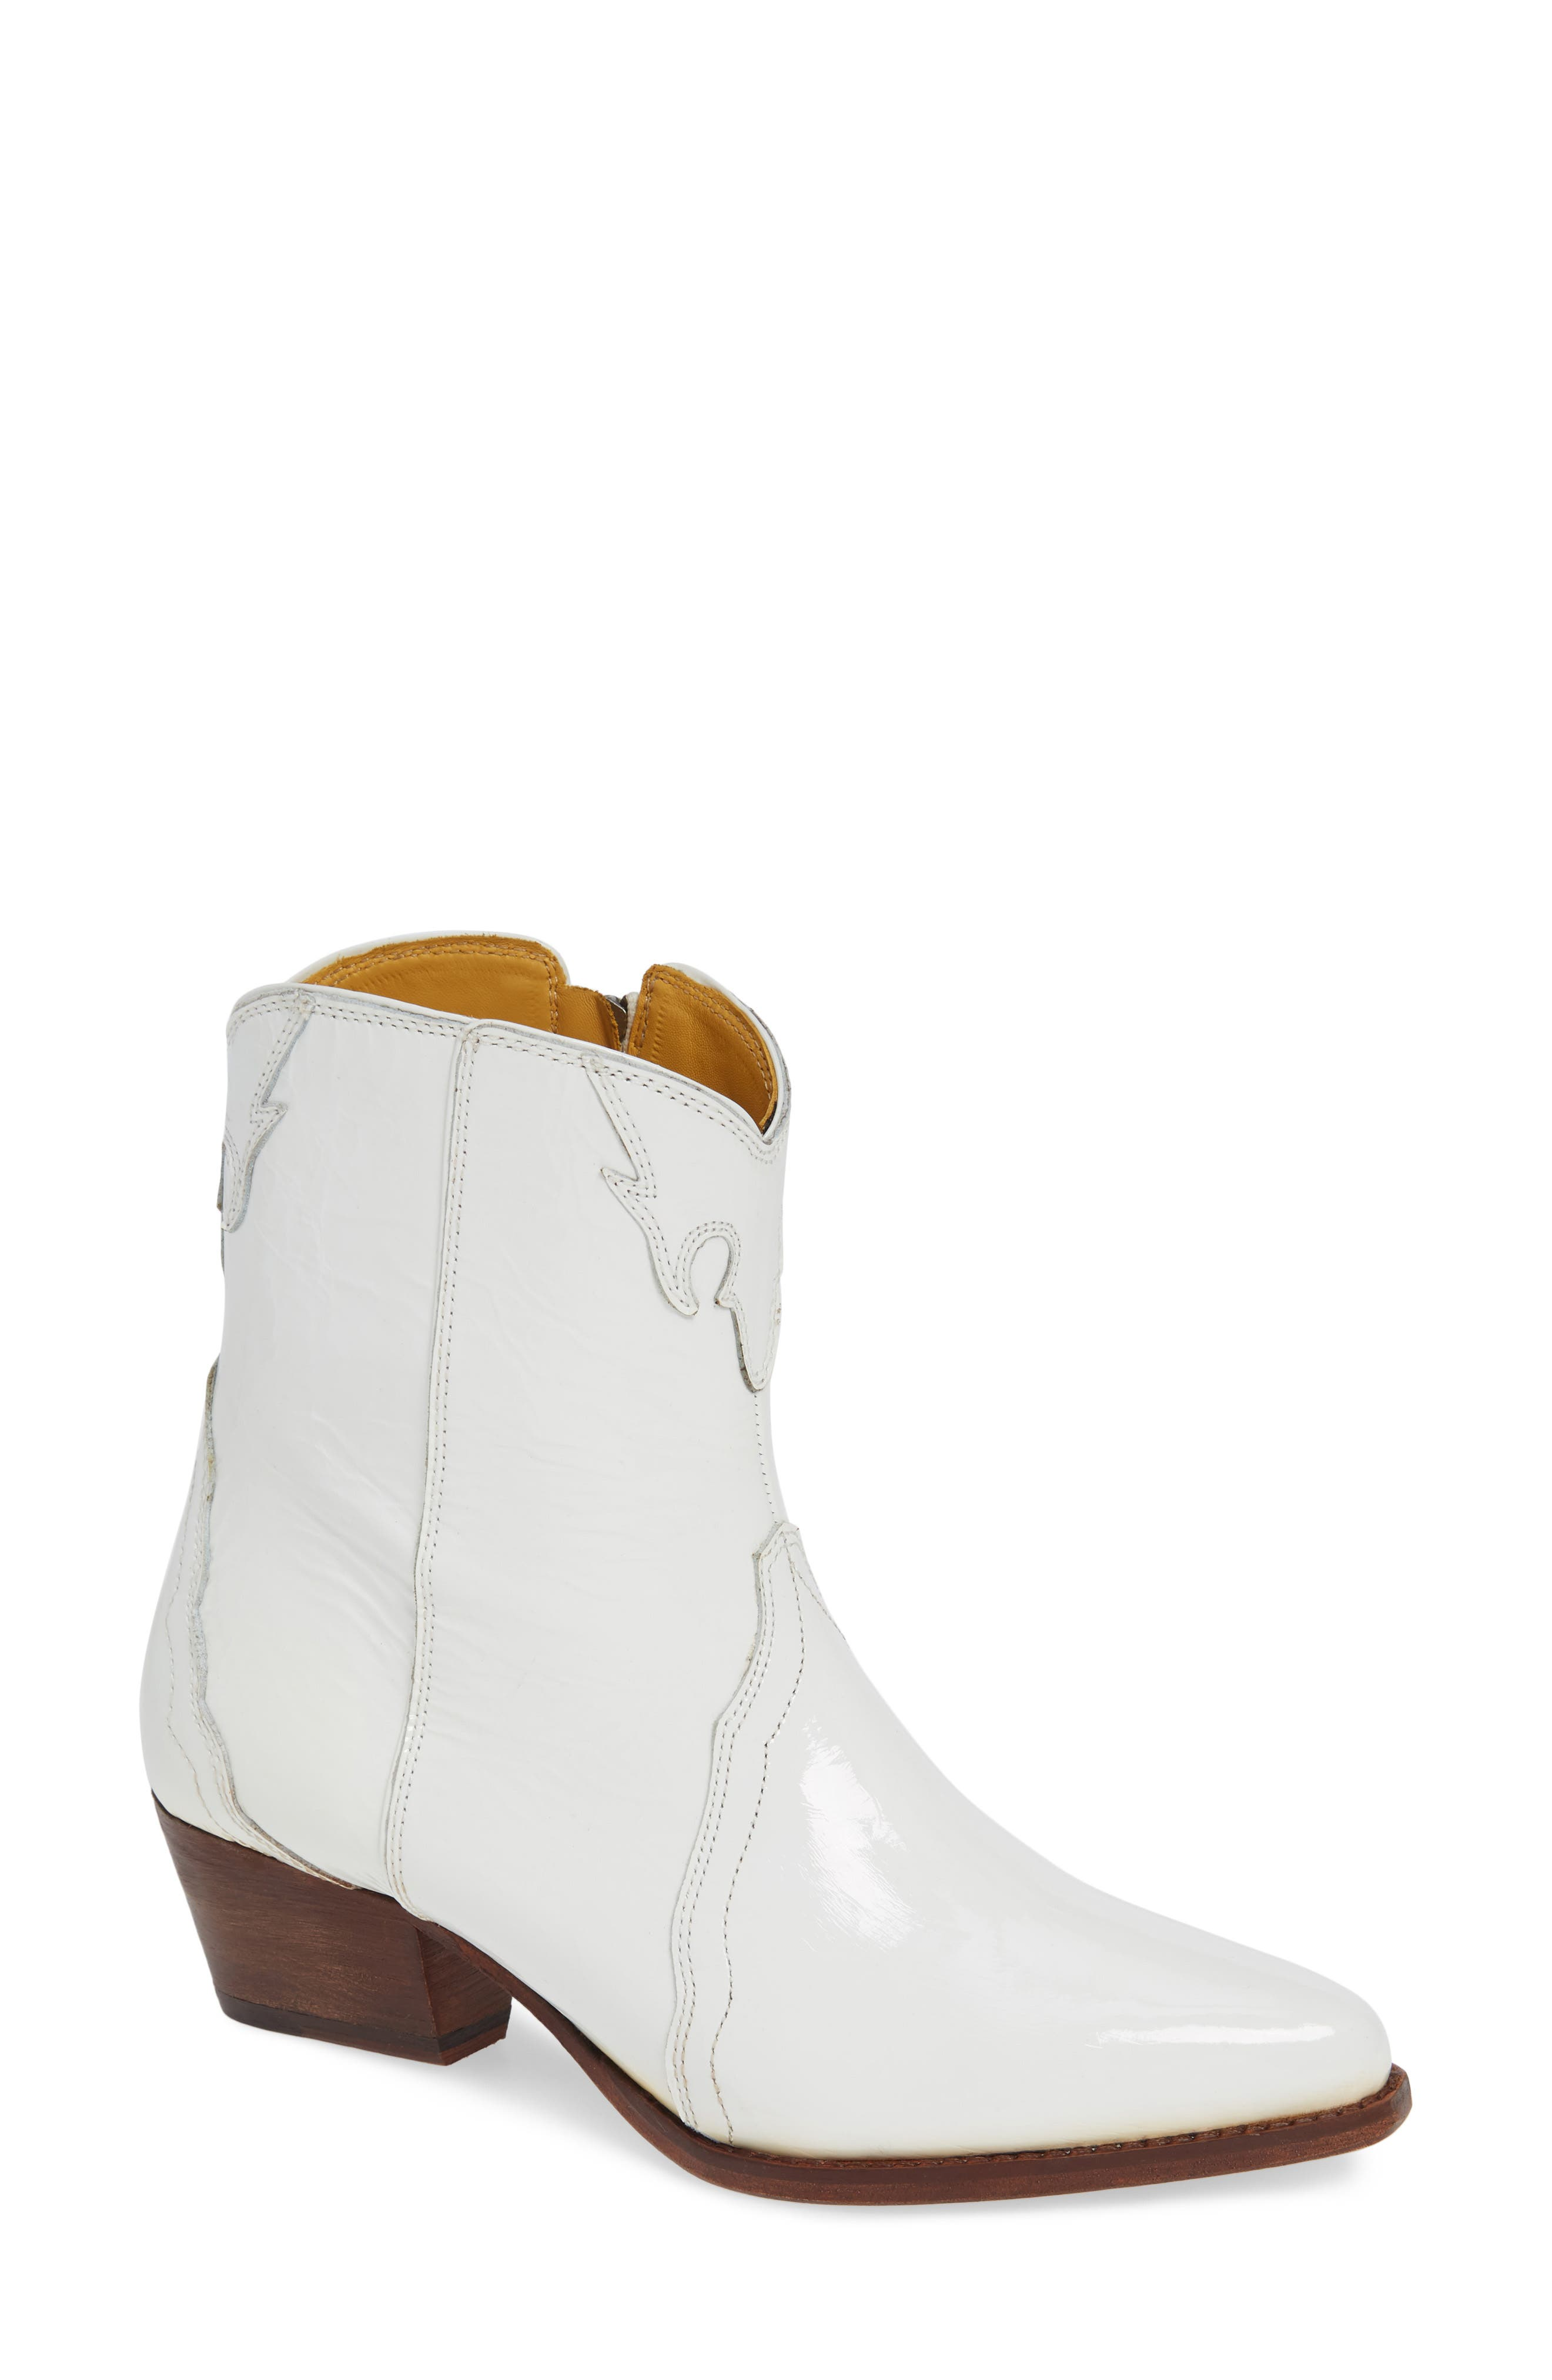 Free People New Frontier Western Bootie, White